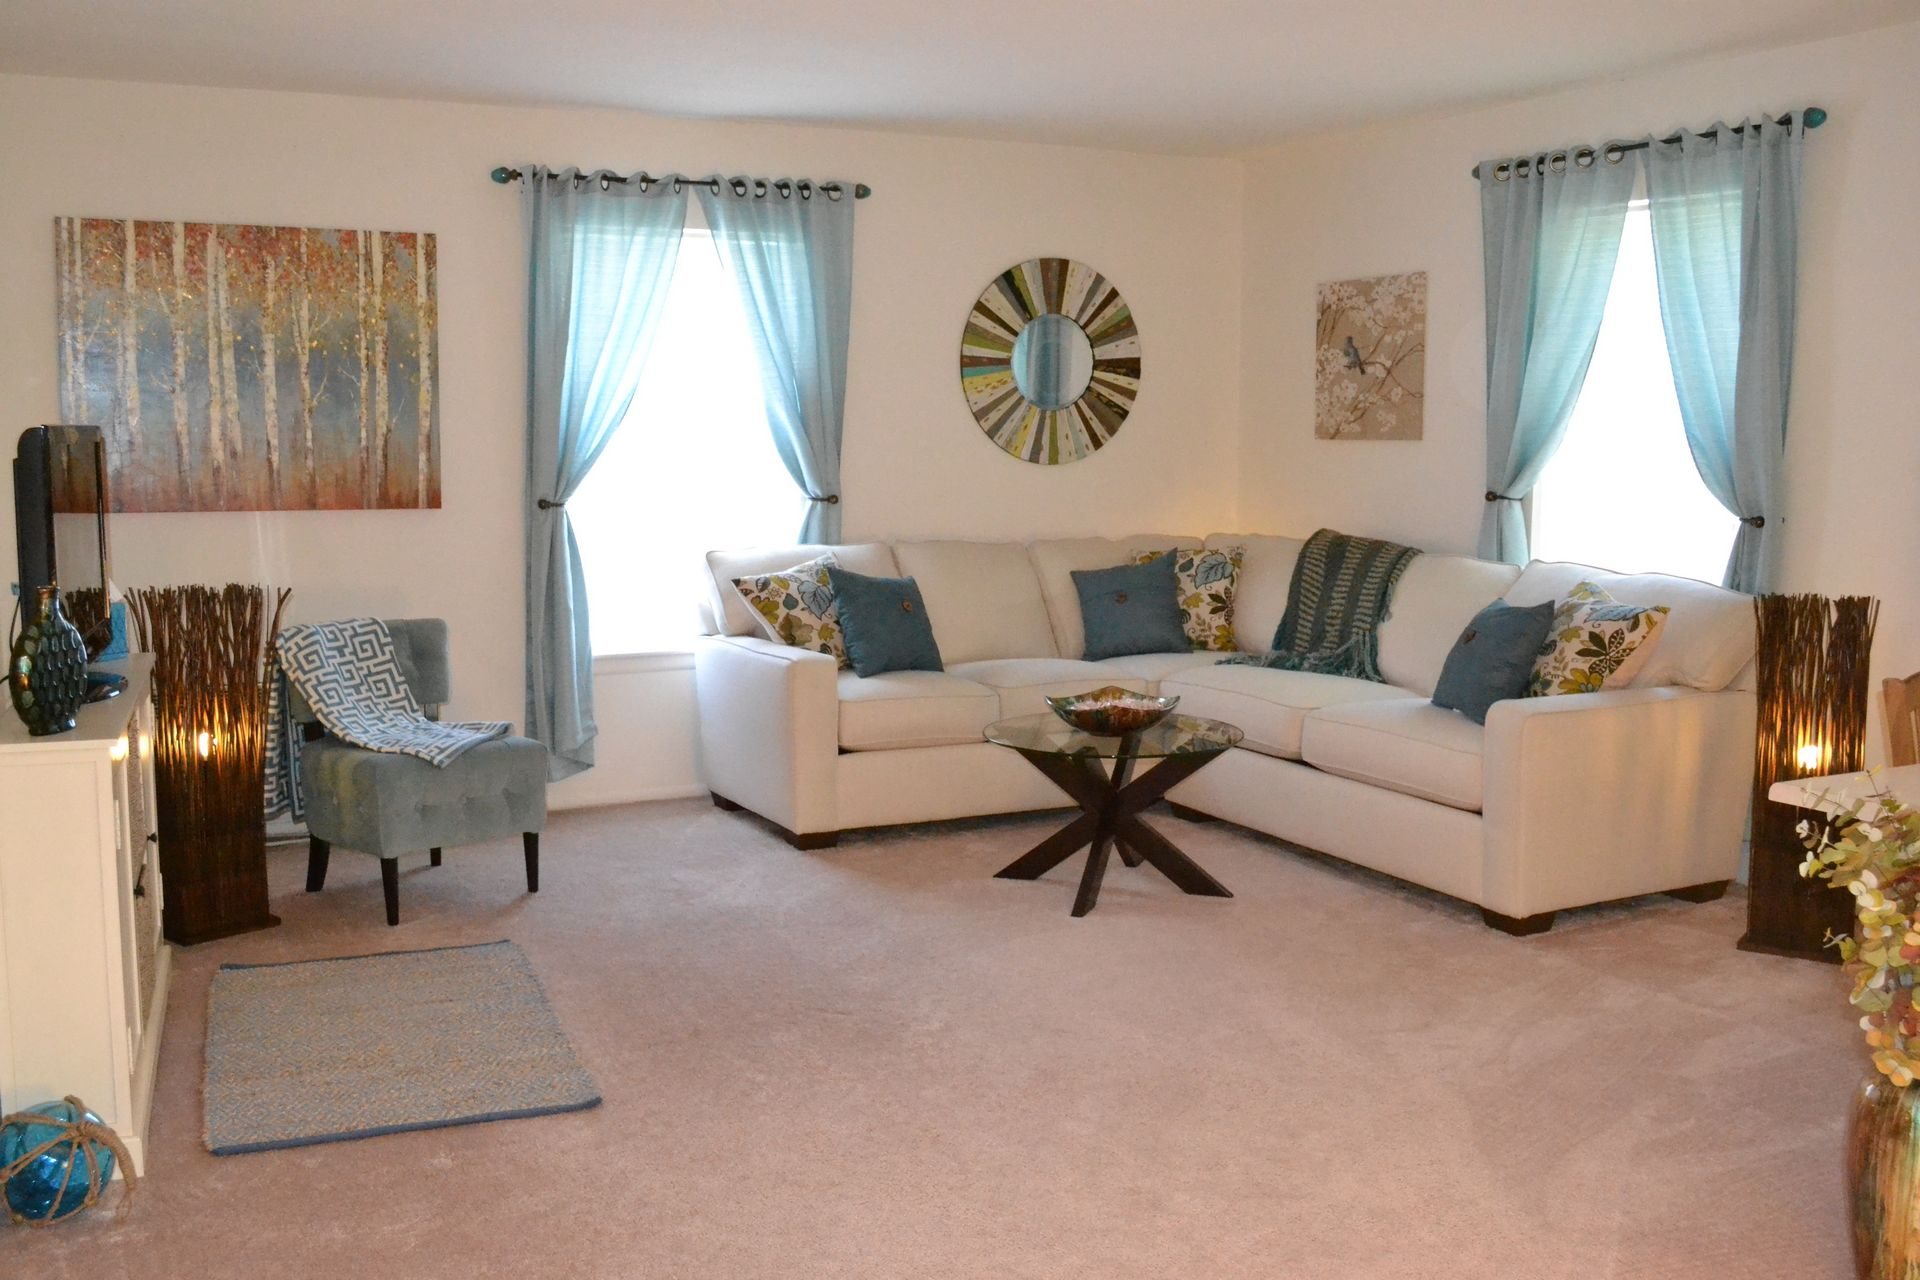 Colonial parke 9 One bedroom apartments wilmington nc